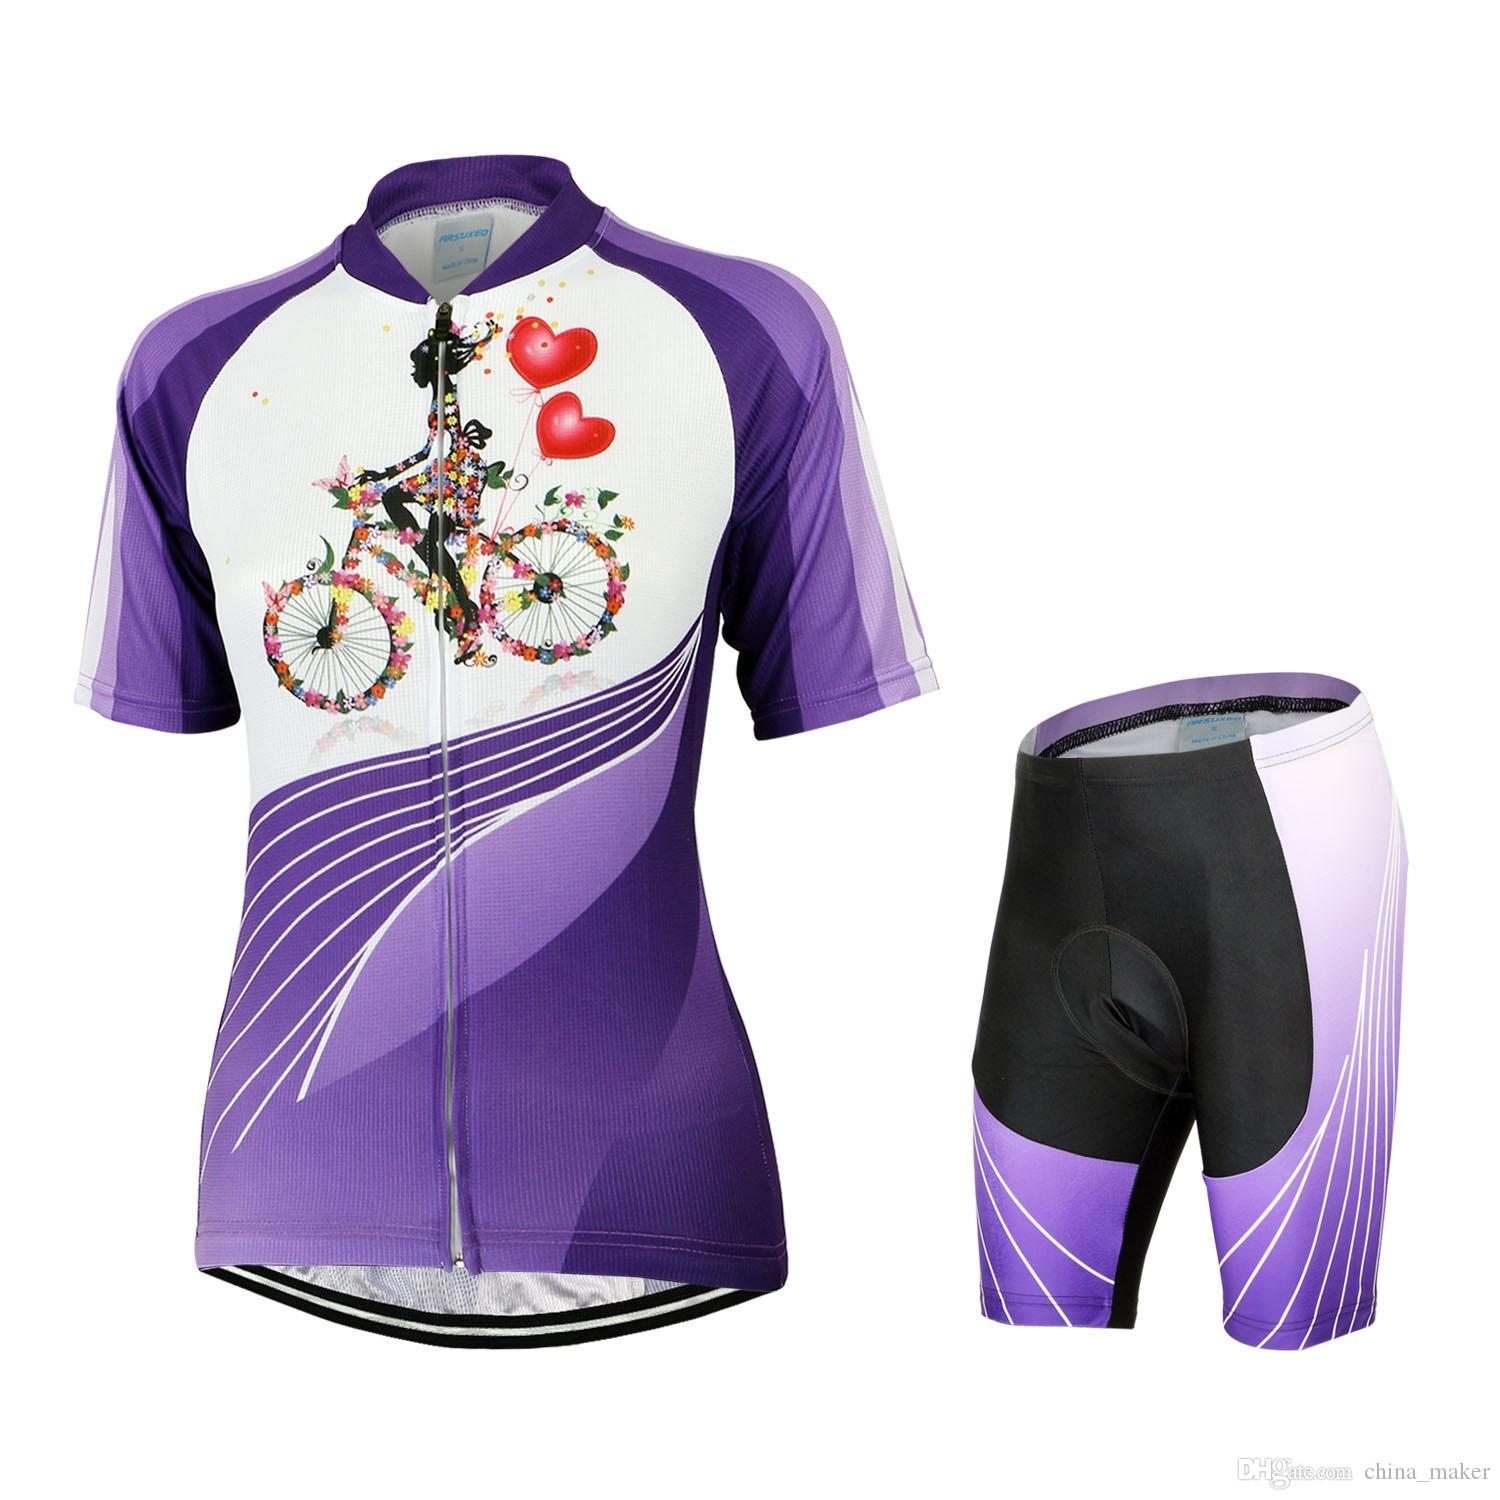 2016 new style cycling jerseys colorful design young girl women cute cycling tops and shorts. Black Bedroom Furniture Sets. Home Design Ideas